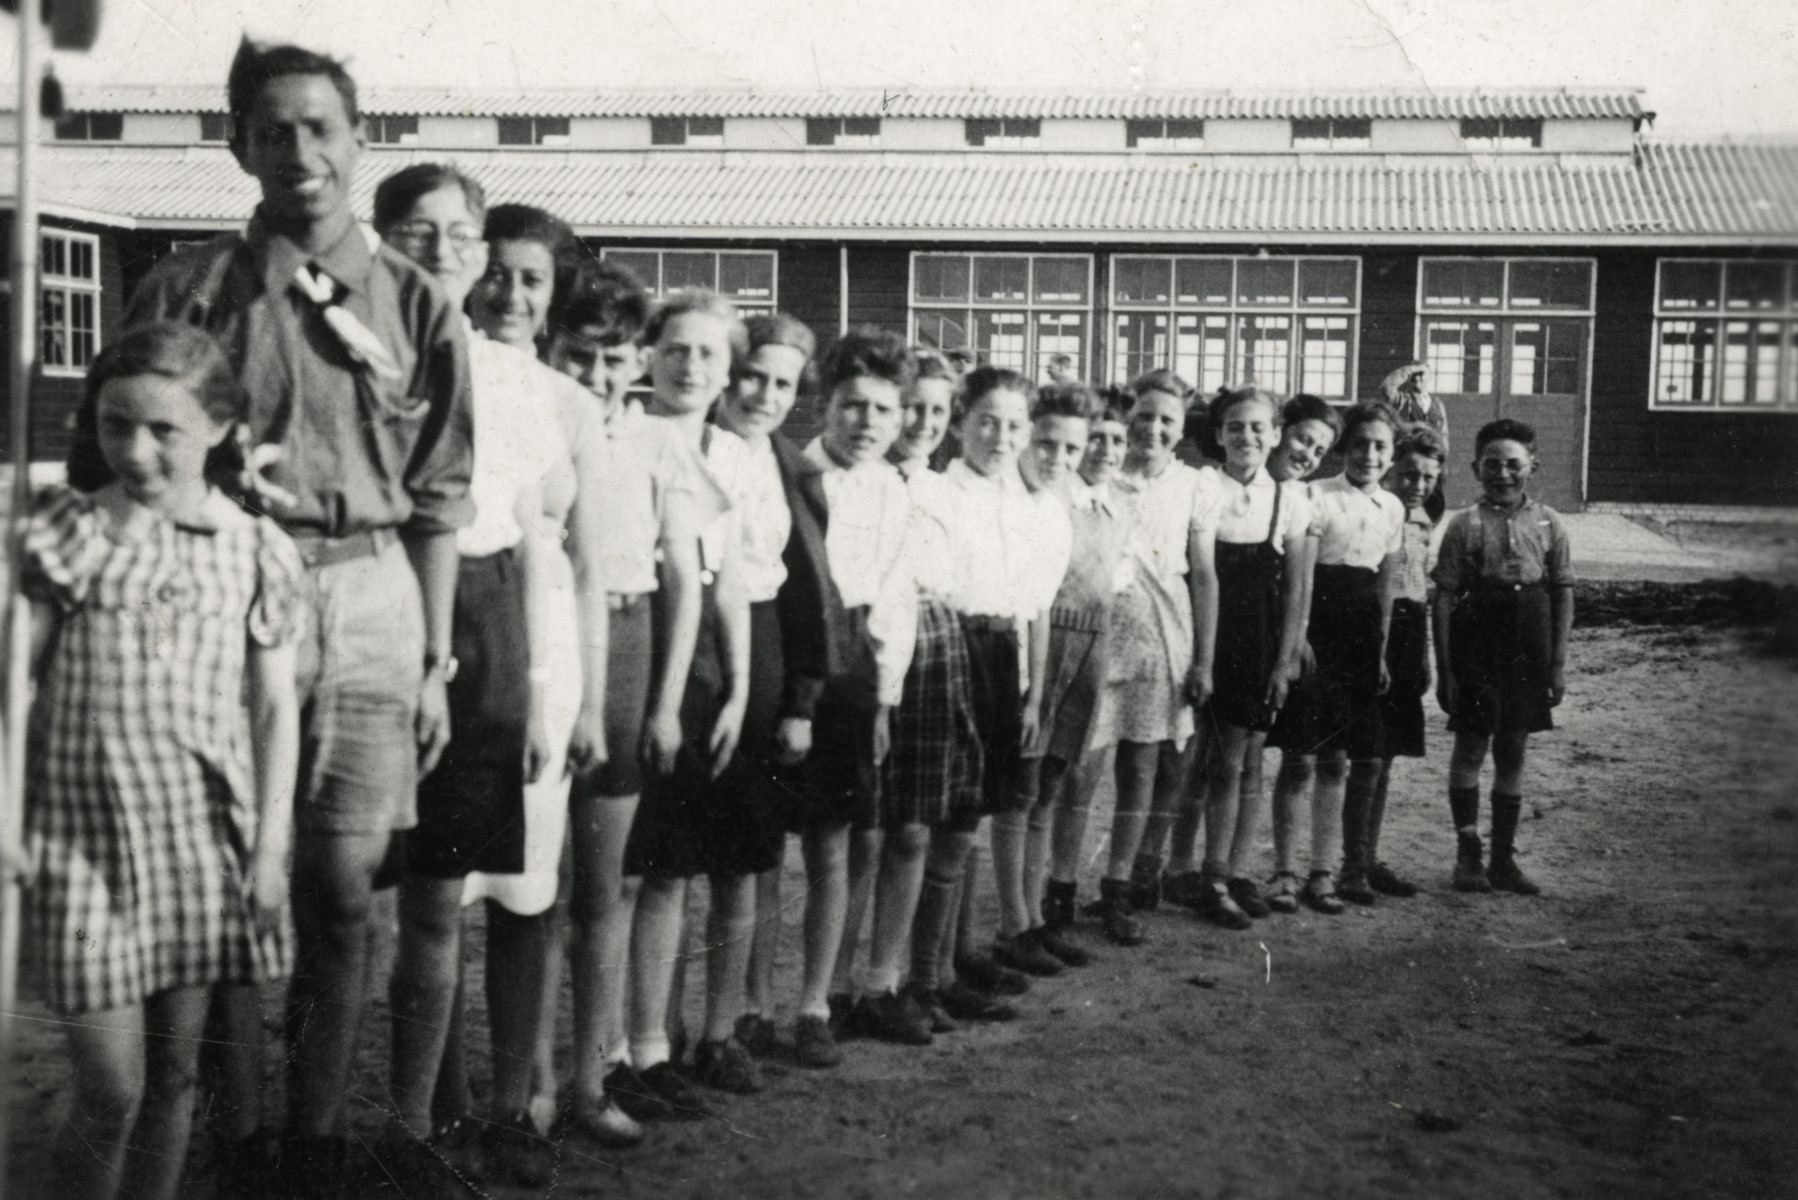 Children in a Jewish youth movement stand in formation in the Westerbork camp.  Sonni Birnbaum is on the far left and the group leader, Leo Blumemson, is next to her.